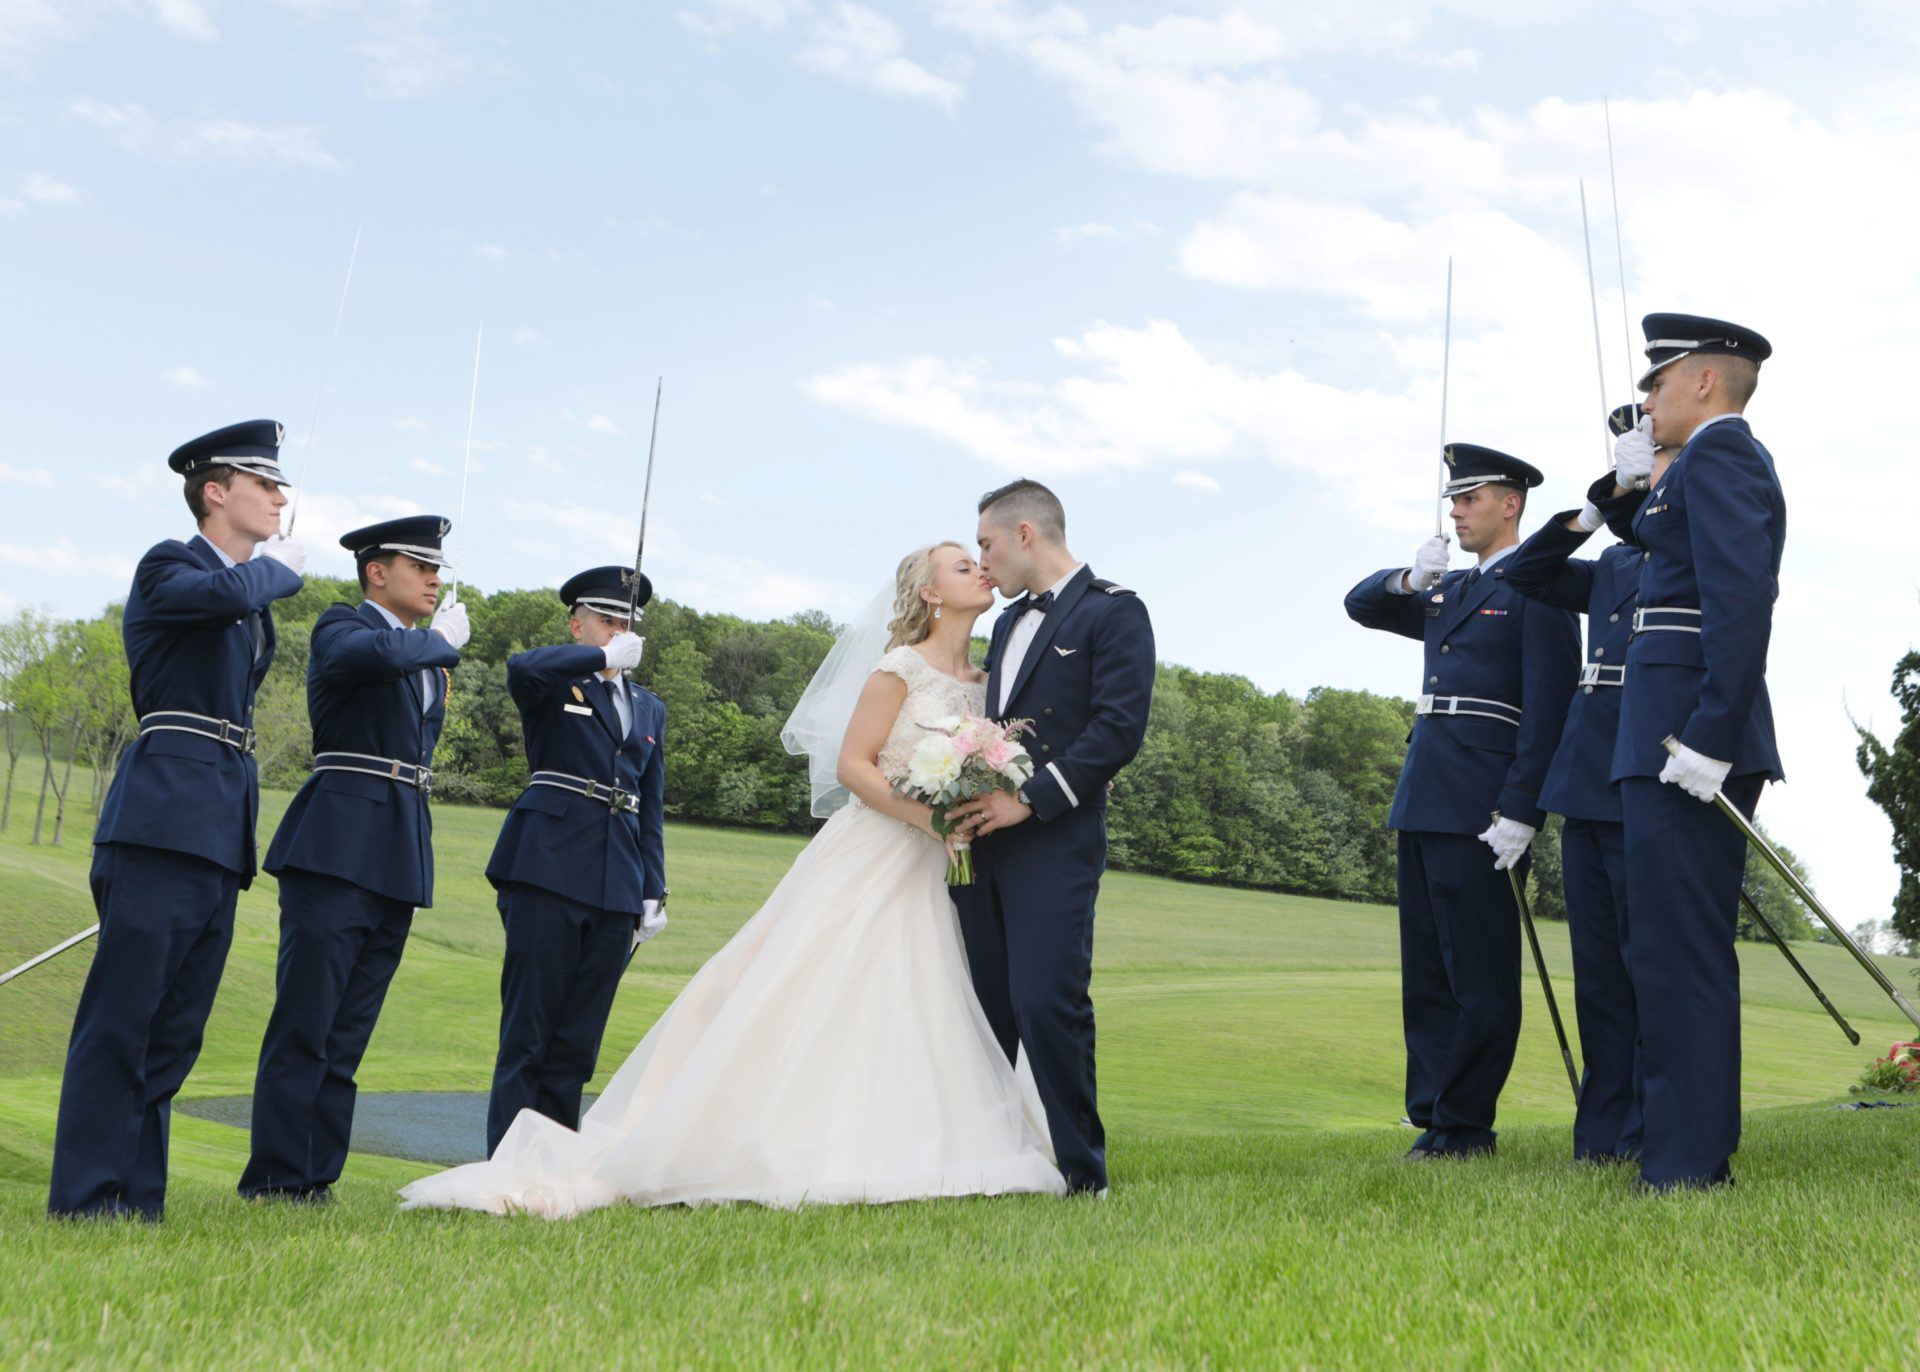 Military salute after spring wedding in Frederick Maryland, tea party theme wedding